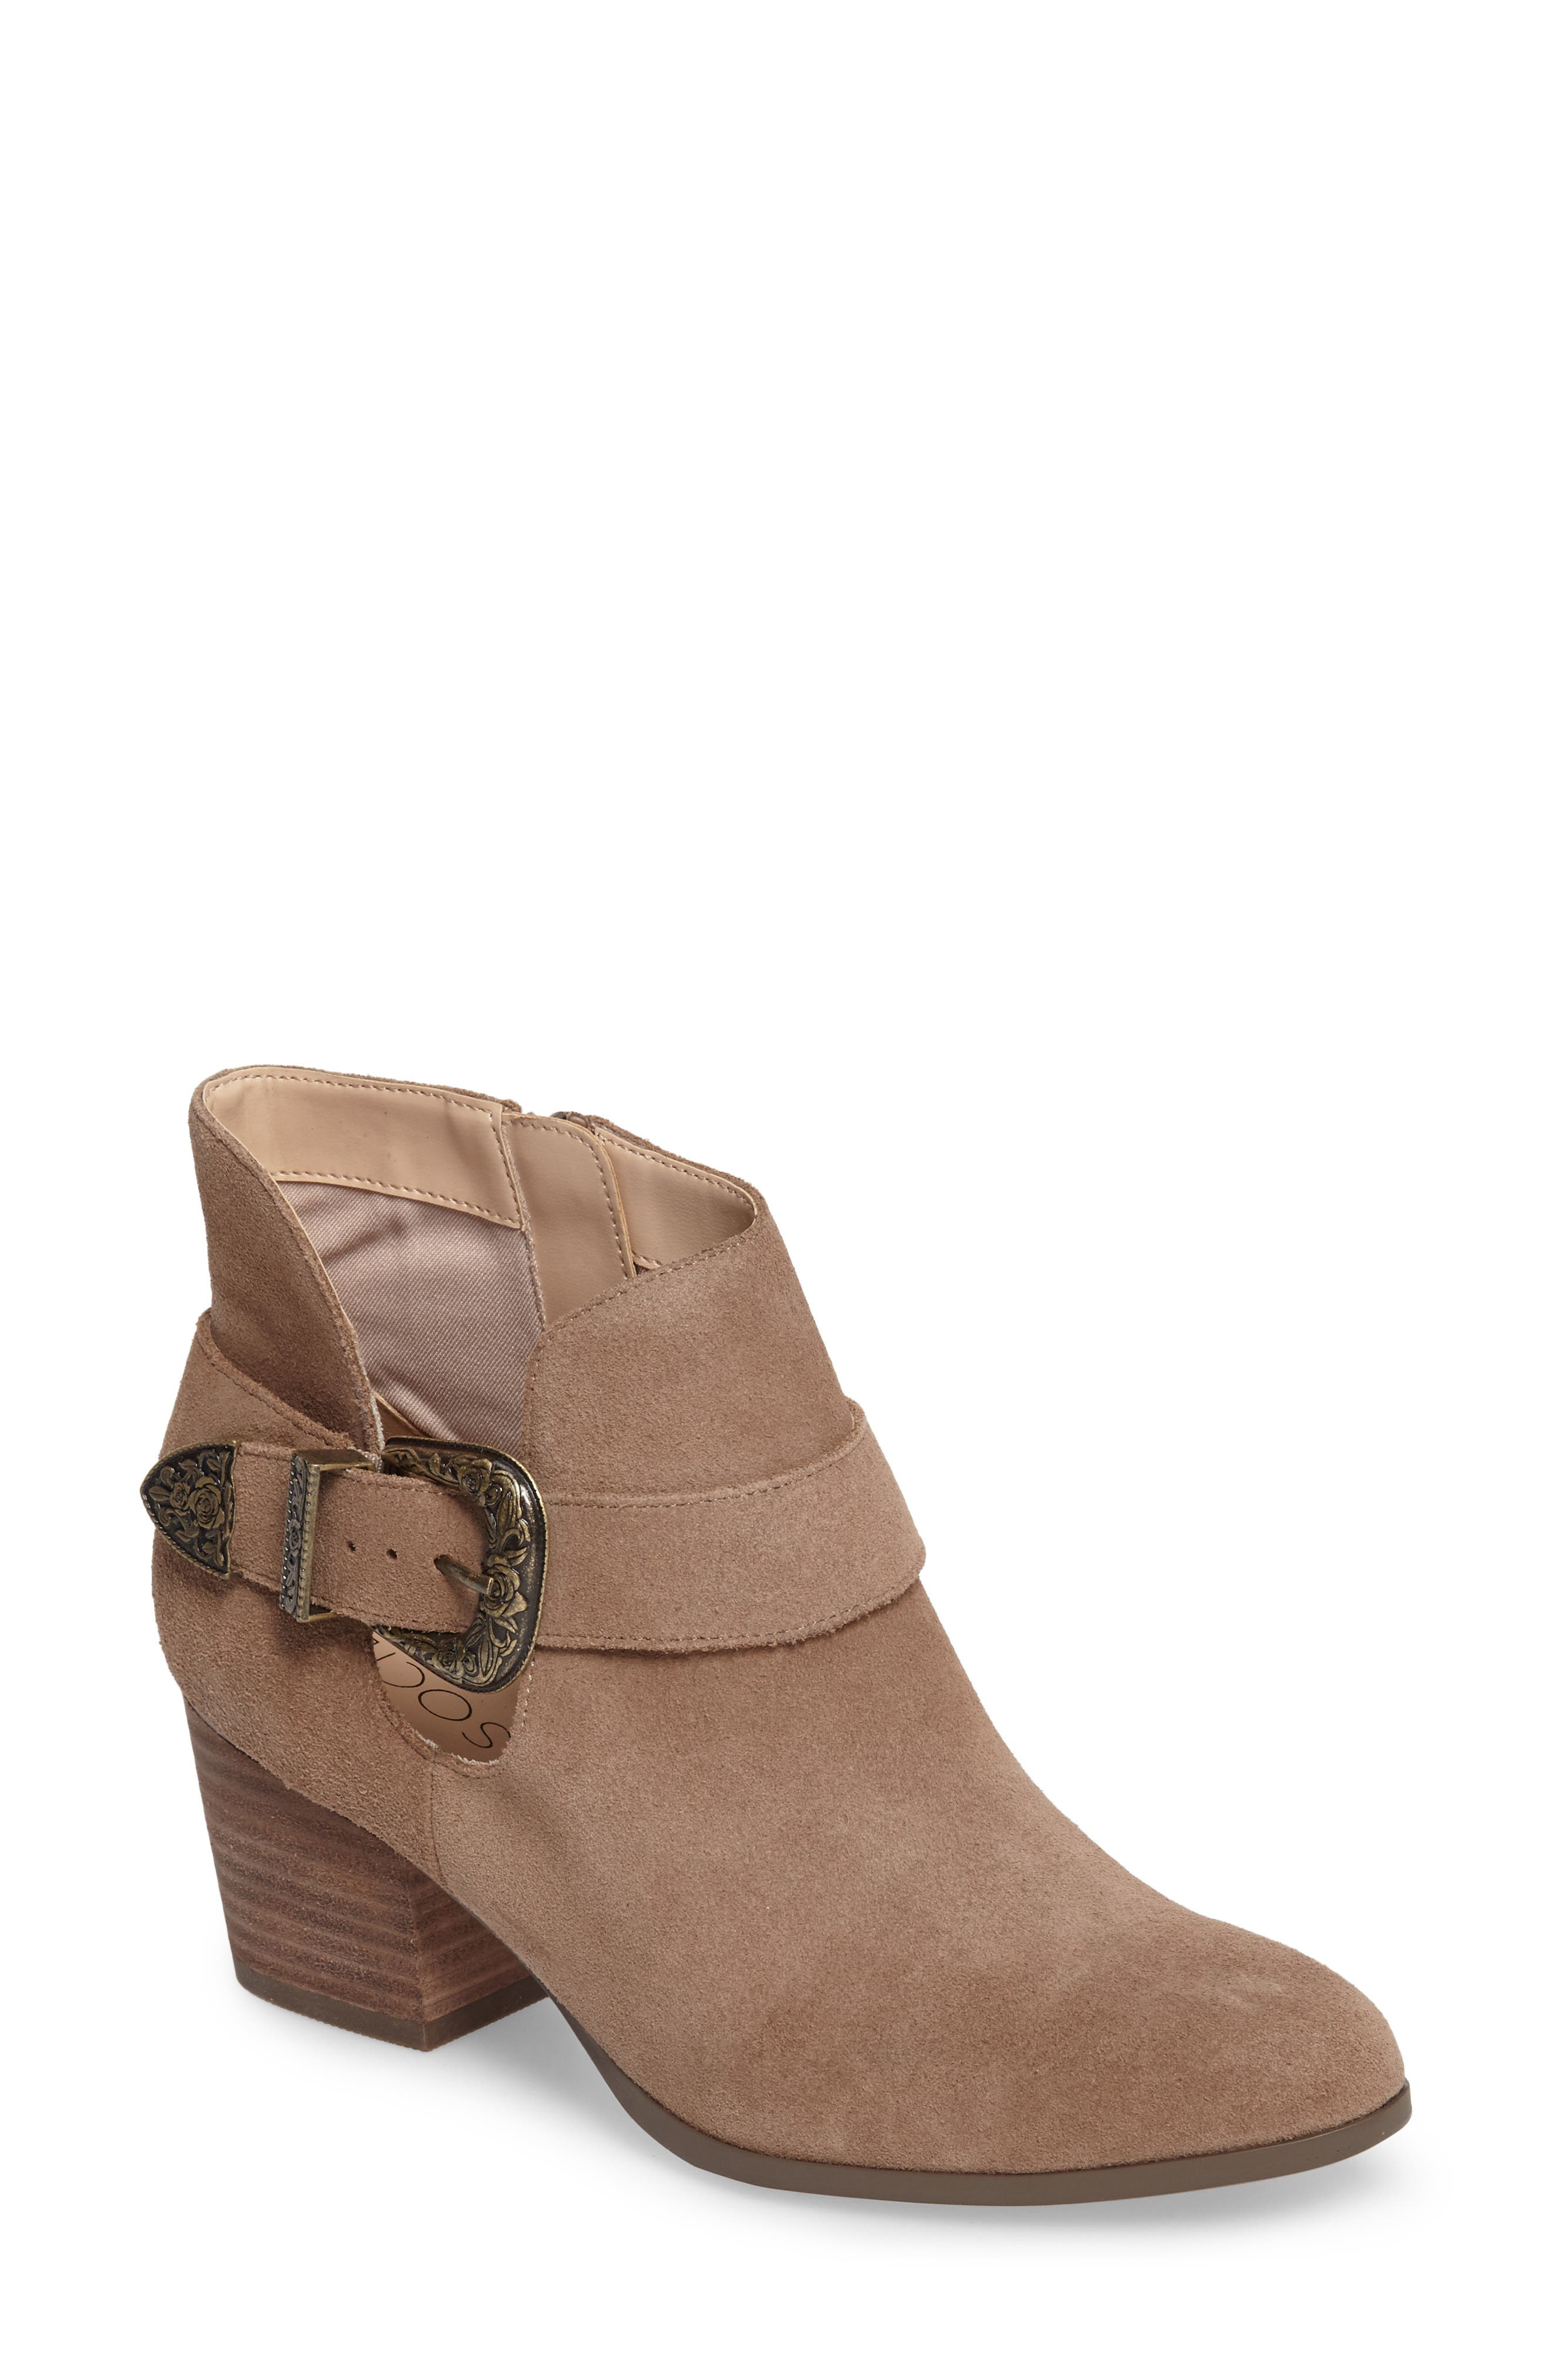 Main Image - Sole Society Jax Bootie (Women)